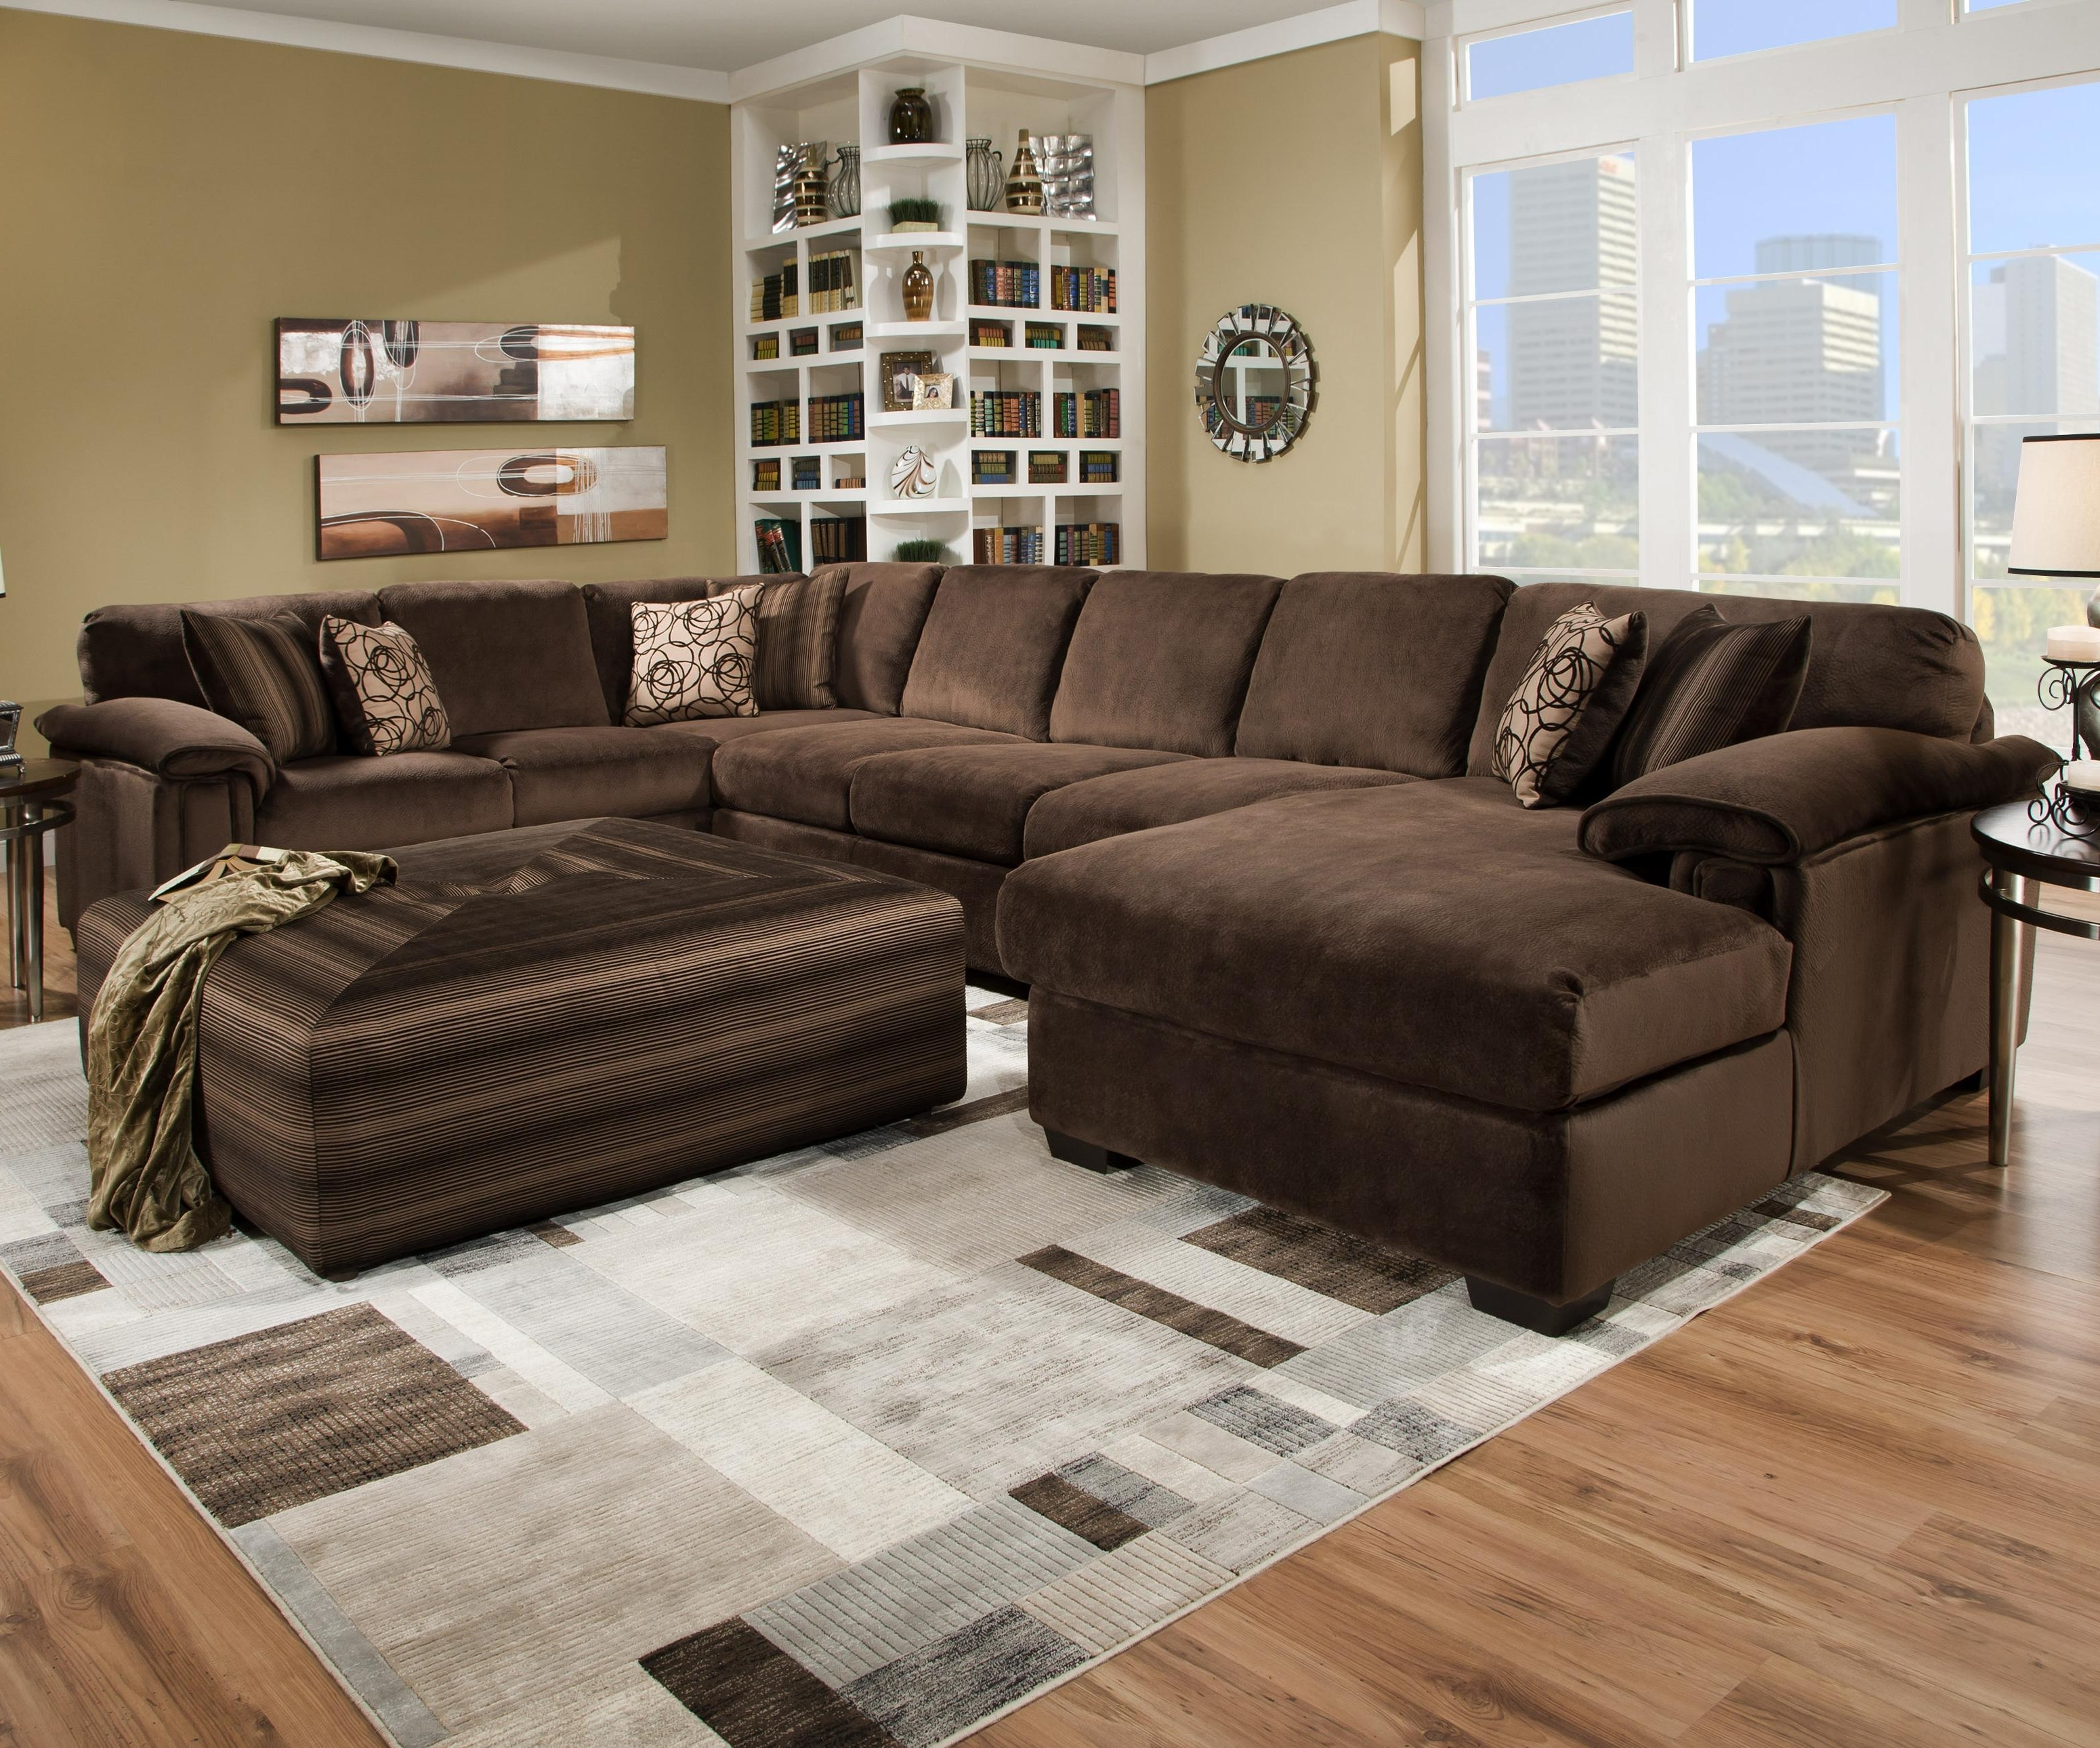 Most Current Sectional With Oversized Ottoman #11027 Pertaining To Sectionals With Oversized Ottoman (View 7 of 20)